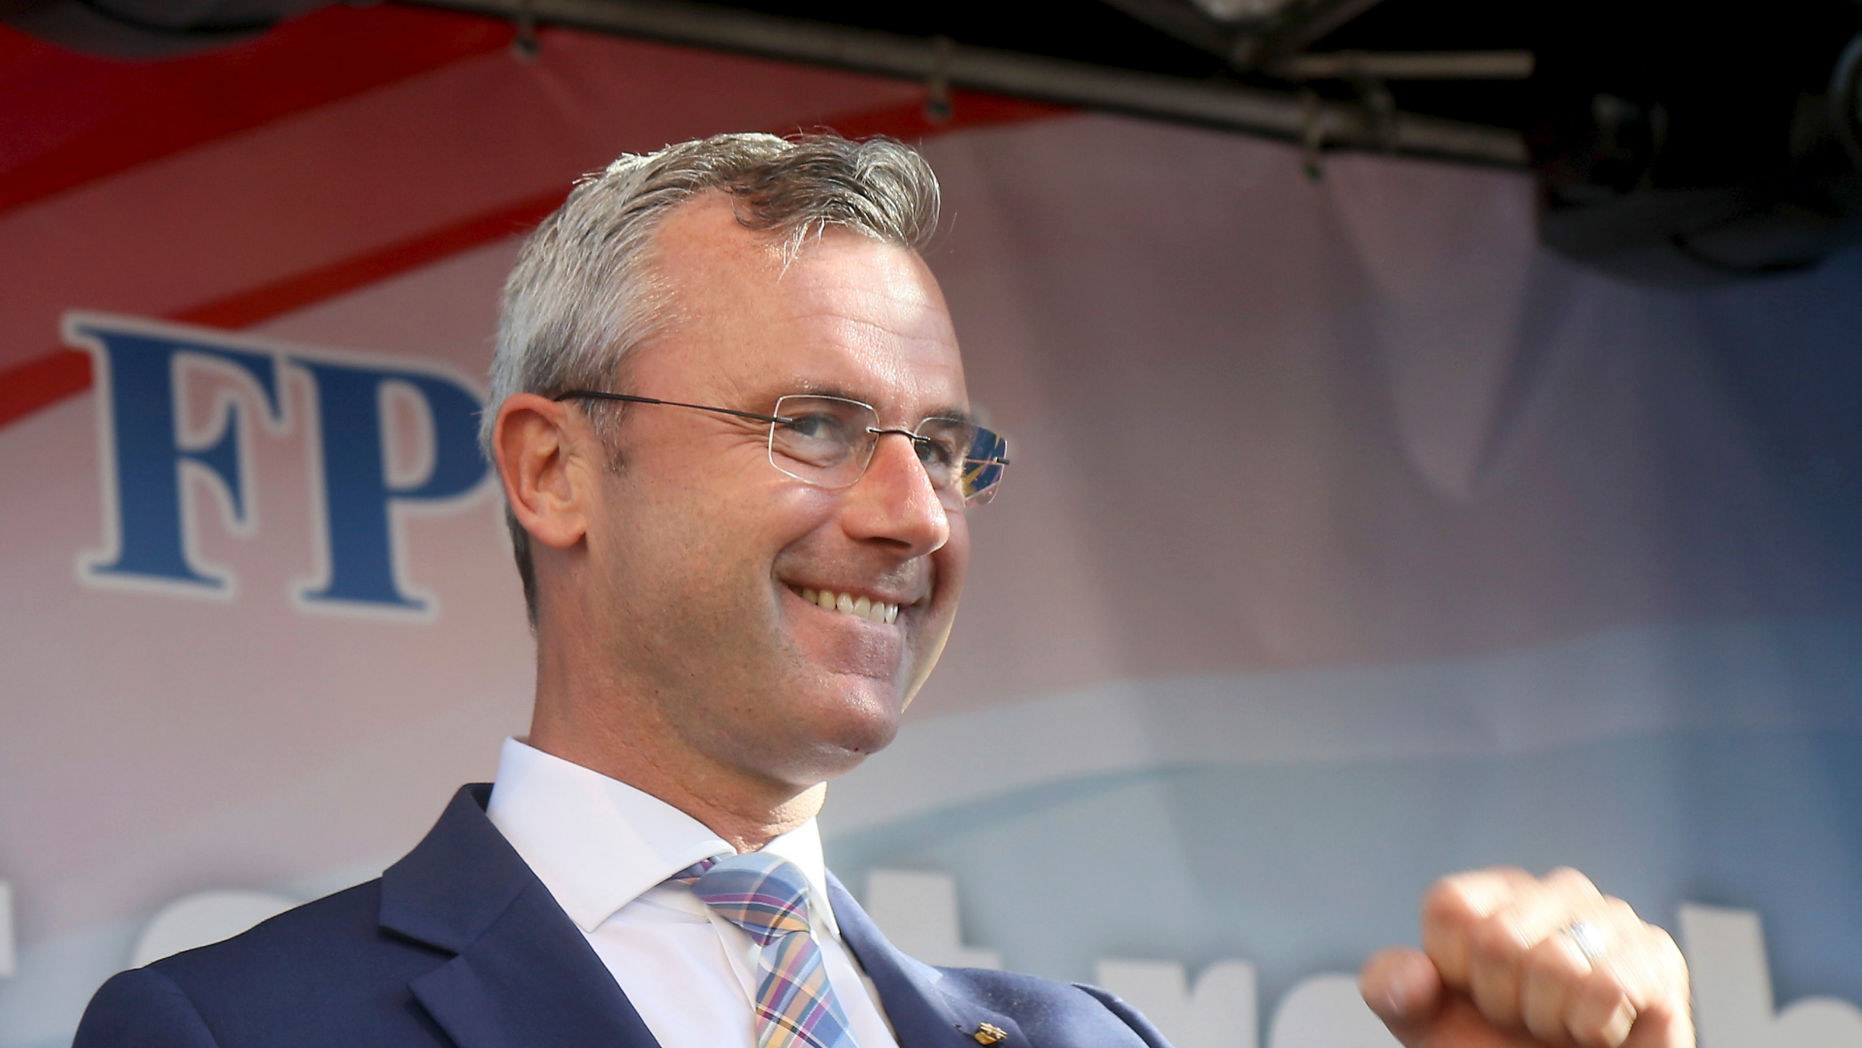 Designated Leader of the right-wing Freedom Party, FPOE, Norbert Hofer waves to his supporters during the final election campaign event for European elections in Vienna, Austria, Friday, May 24, 2019. (AP Photo/Ronald Zak)